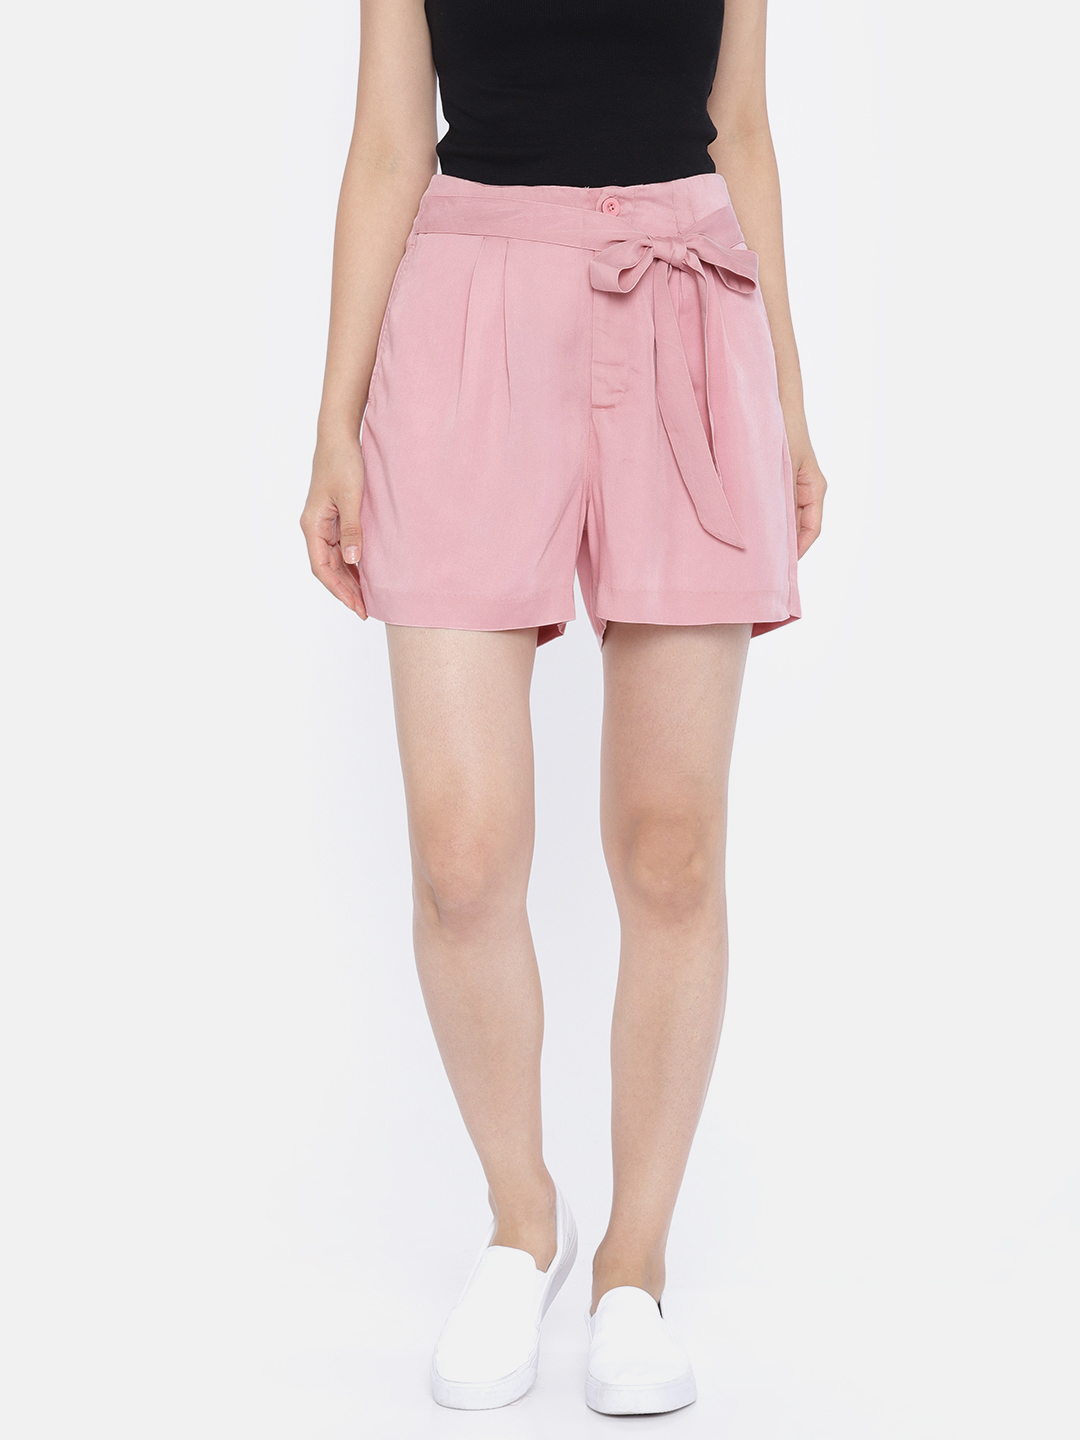 Vero Moda Women Pink Solid Regular Fit Shorts Price in India